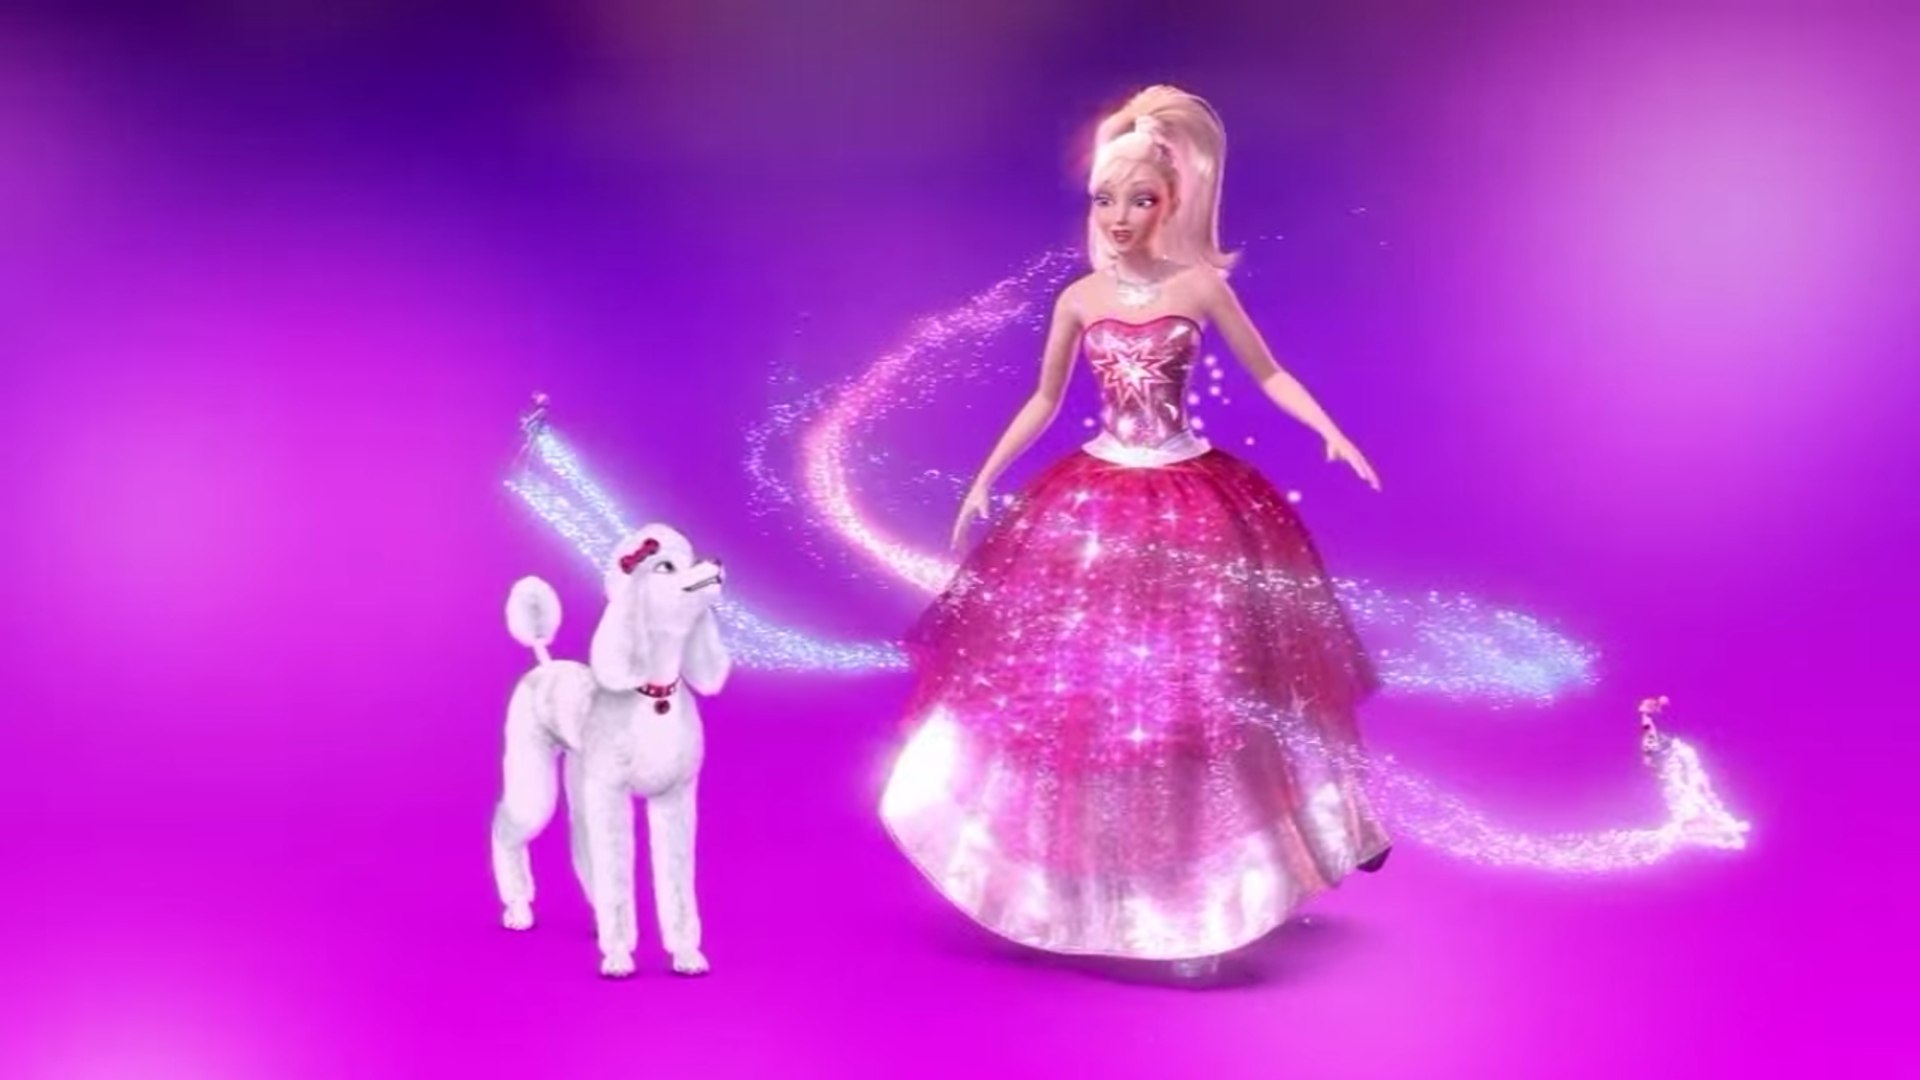 Barbie A Fashion Fairytale Complite Video Part I Video Dailymotion